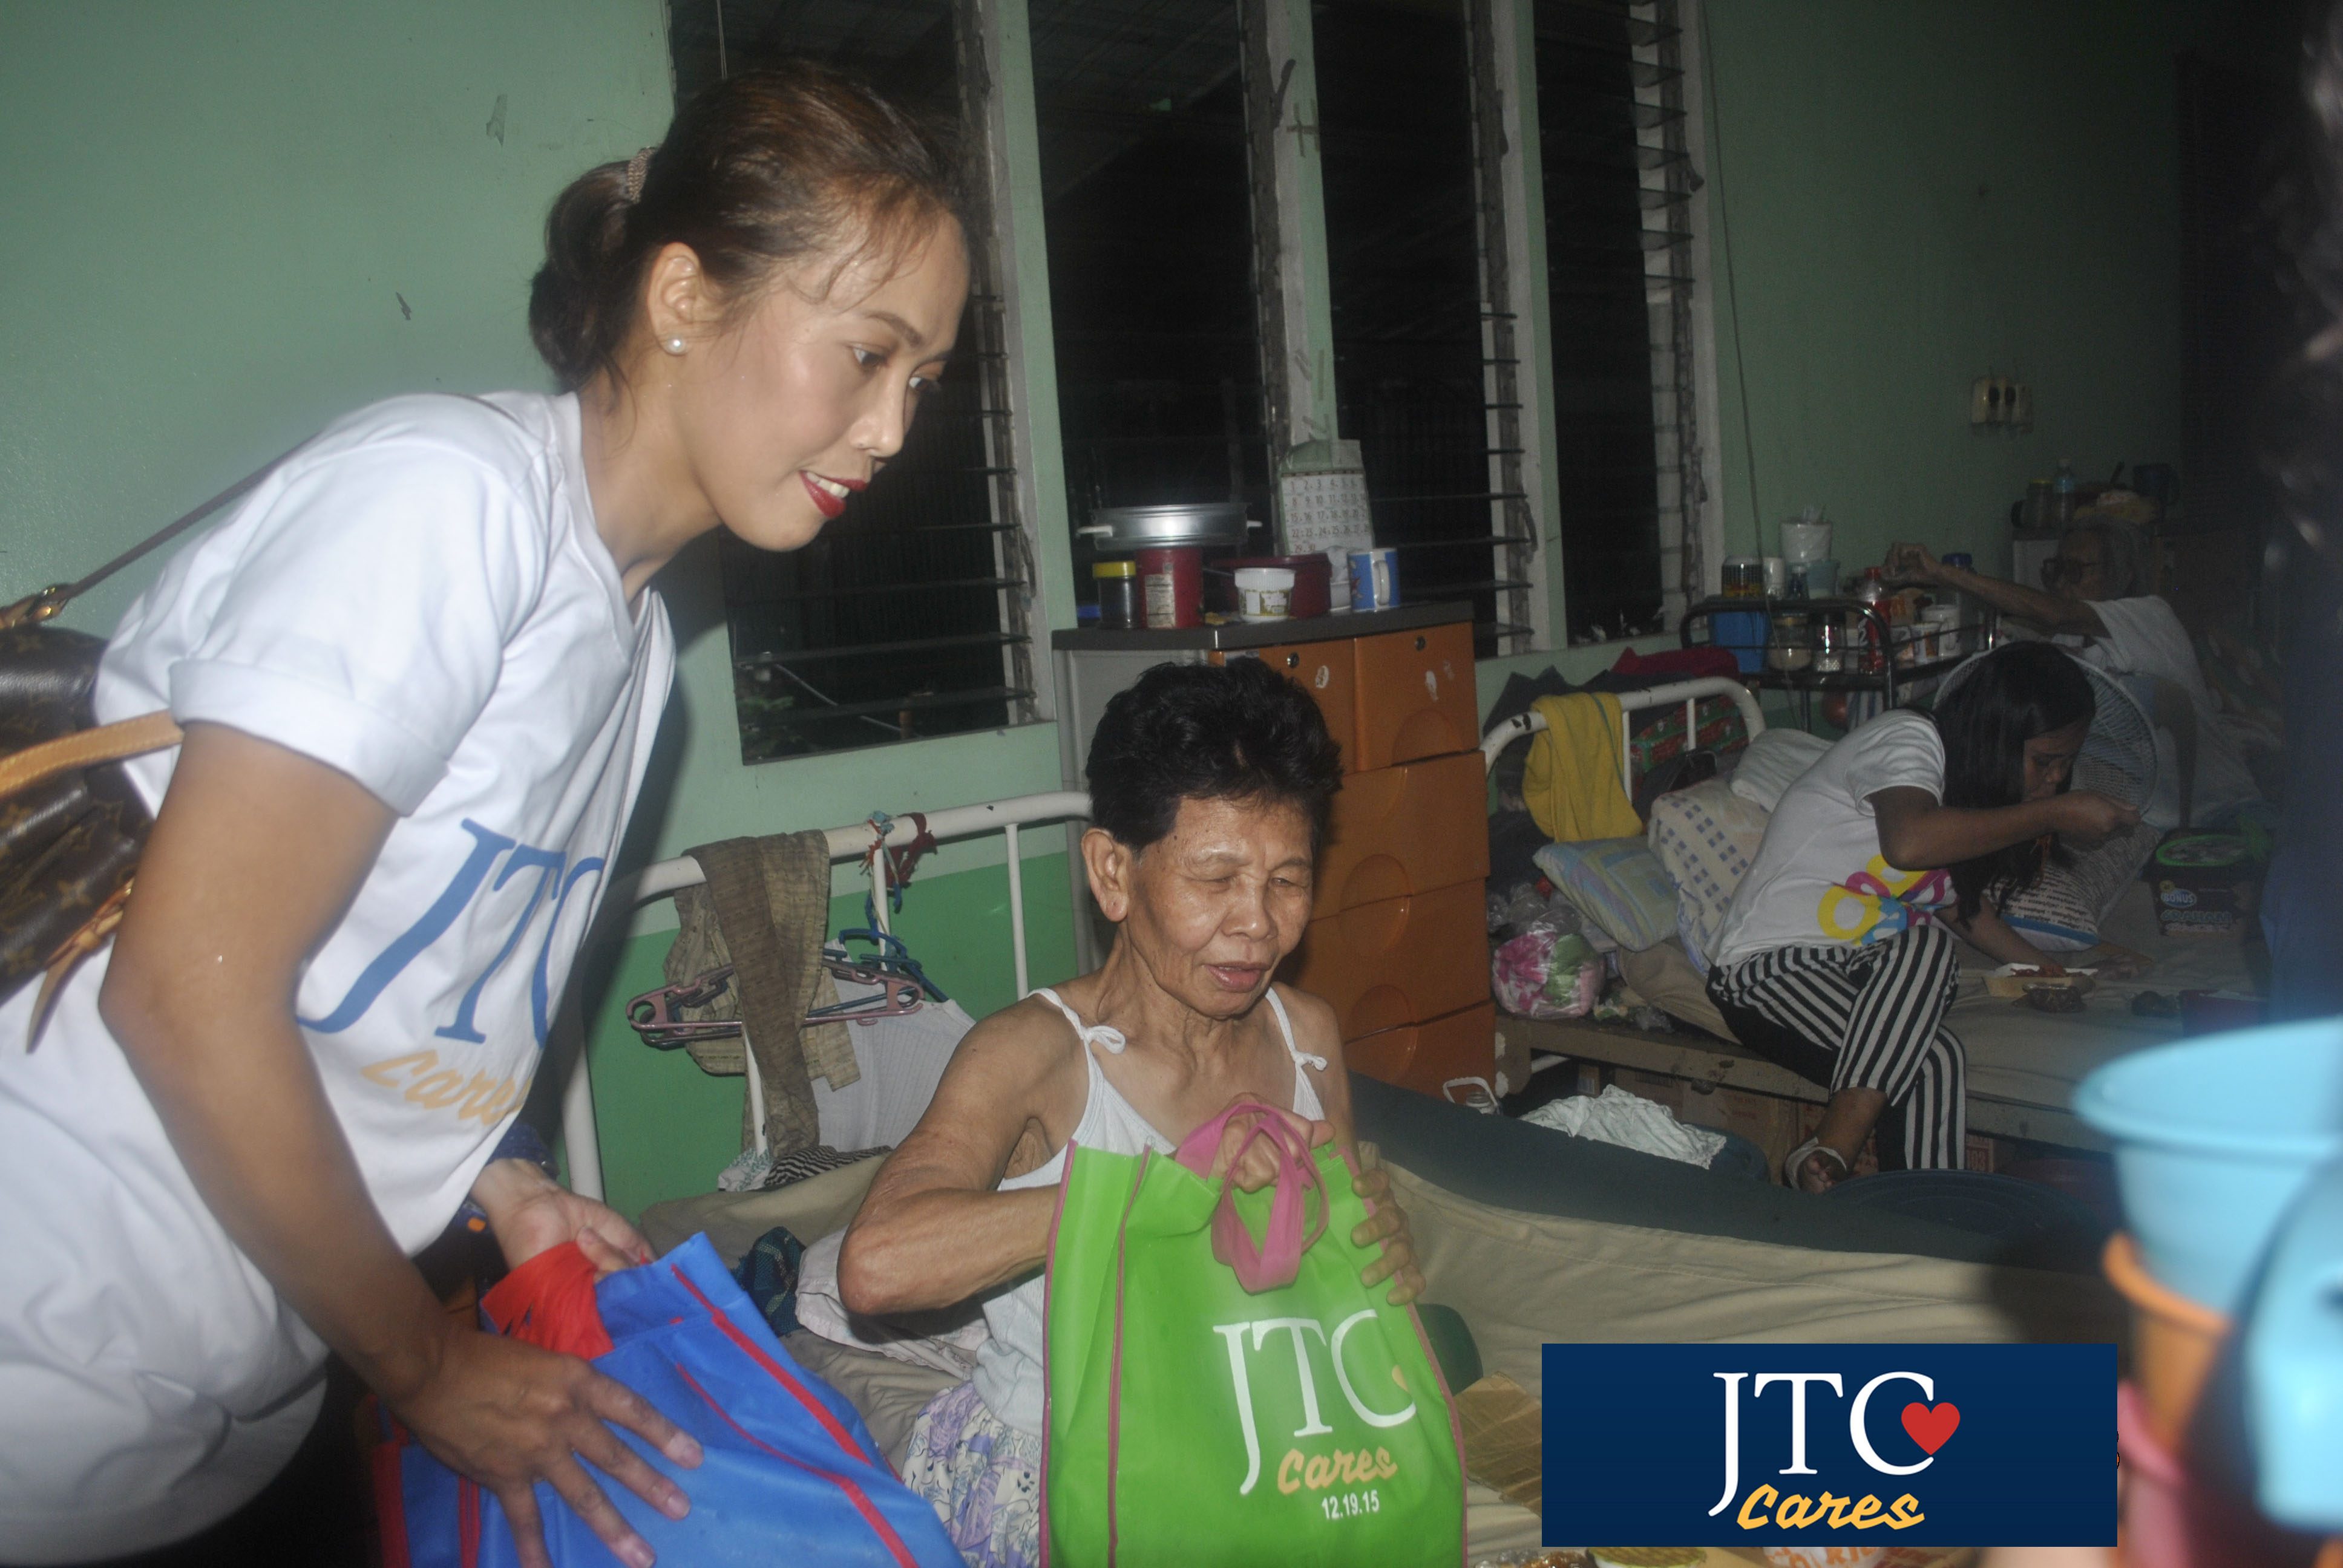 JTC are providing gifts.